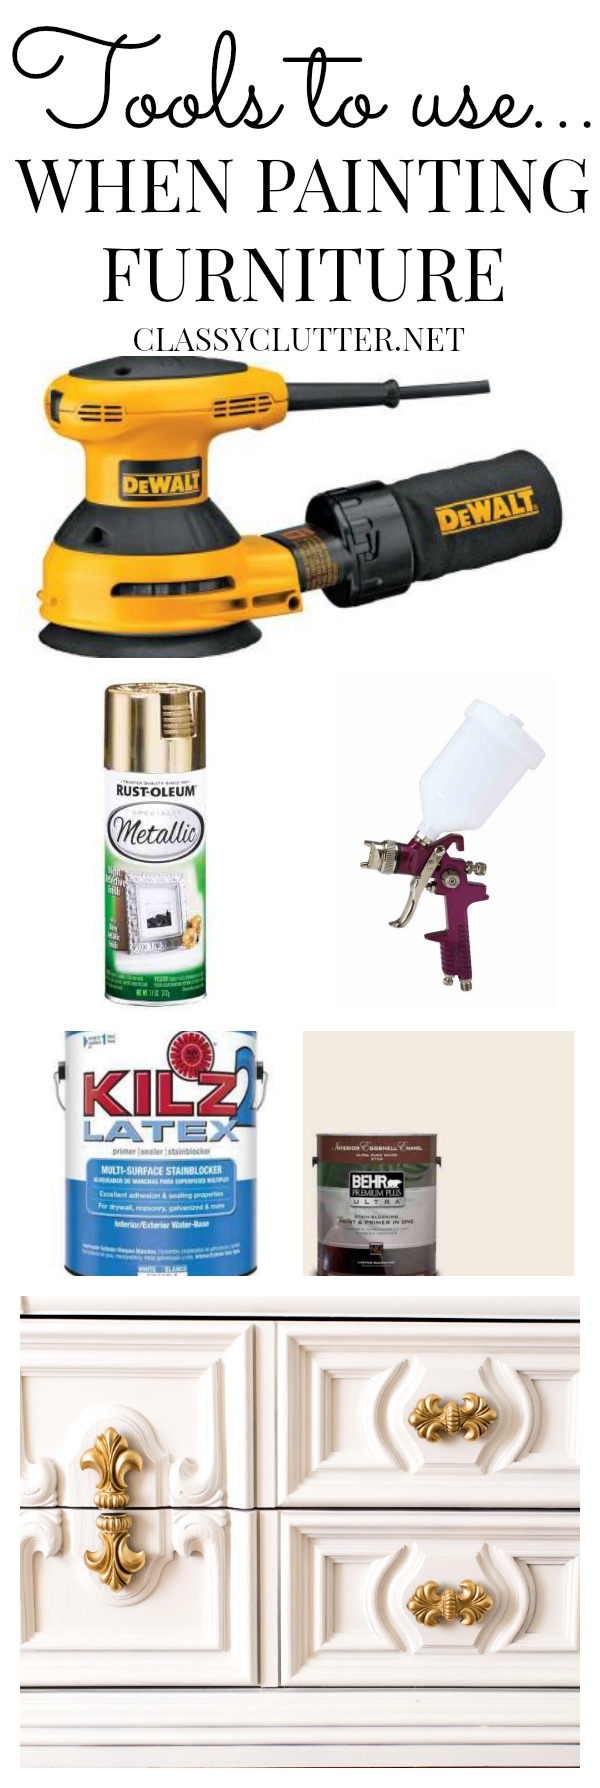 Tools to use when Painting Furniture.jpg